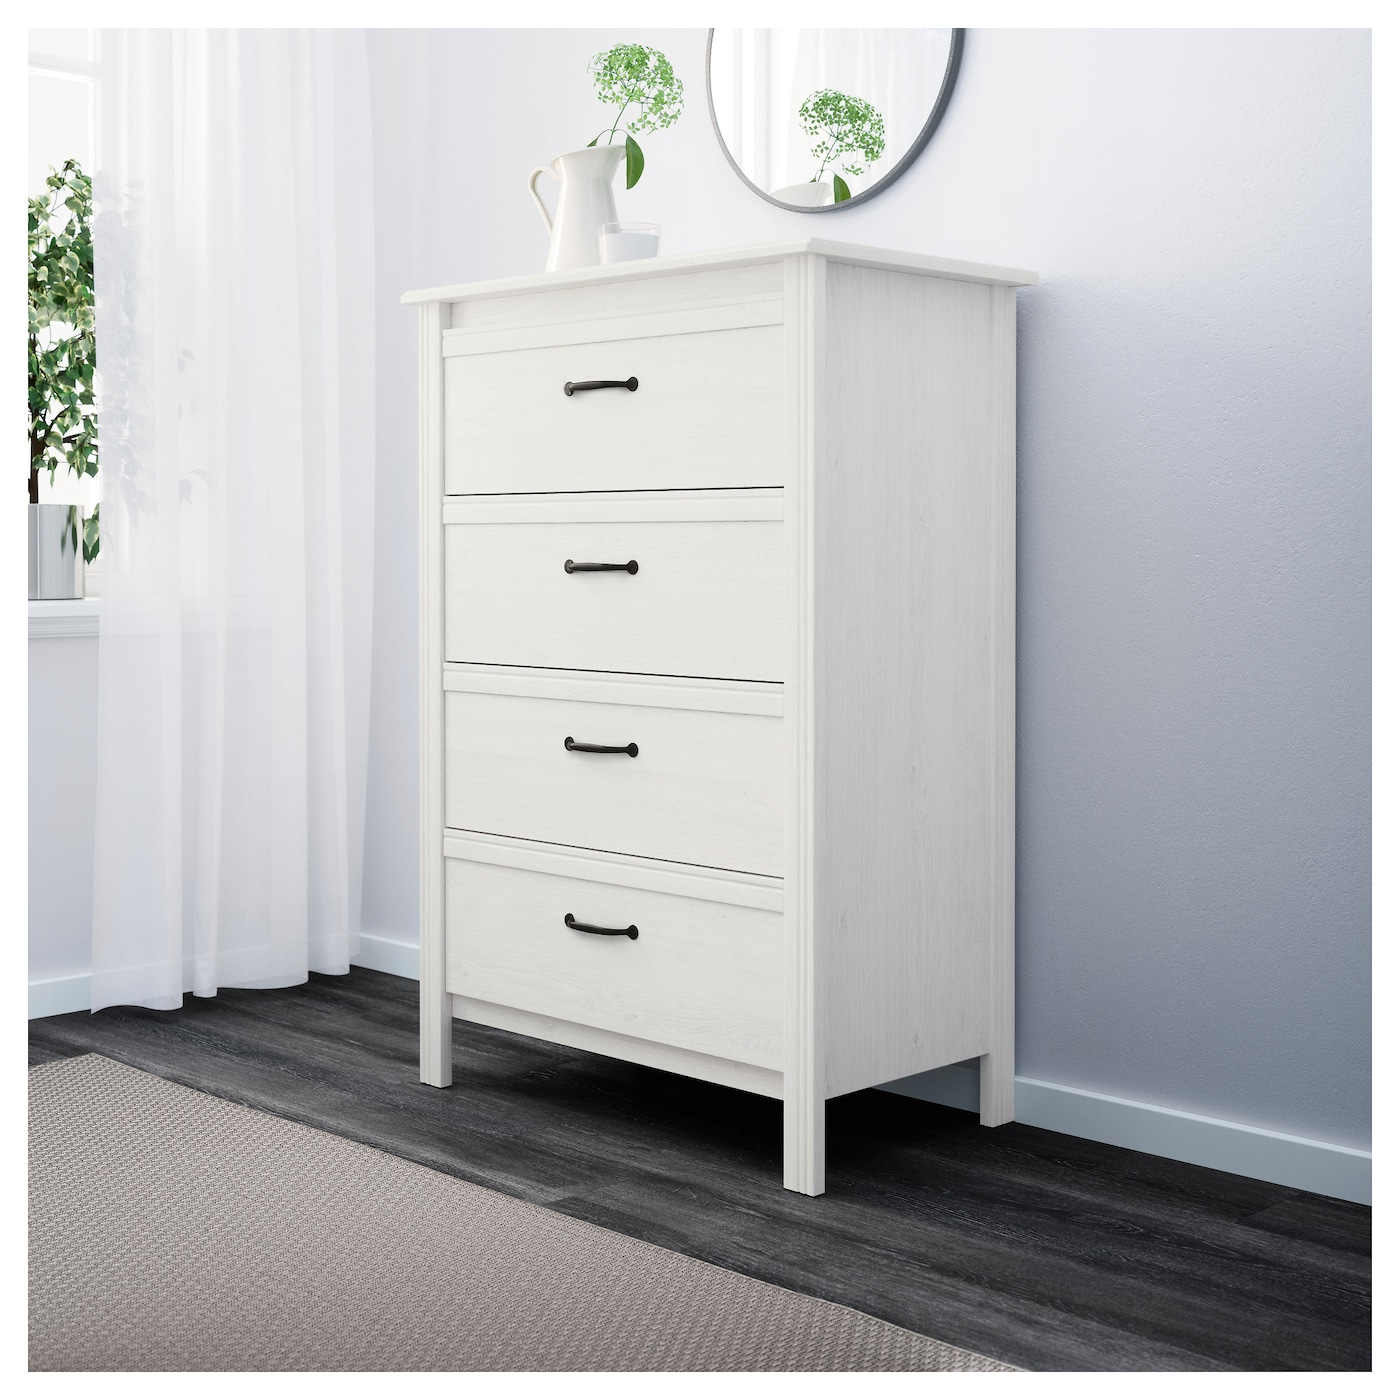 ikea brusali chest of 4 drawers smooth running drawers with pull out